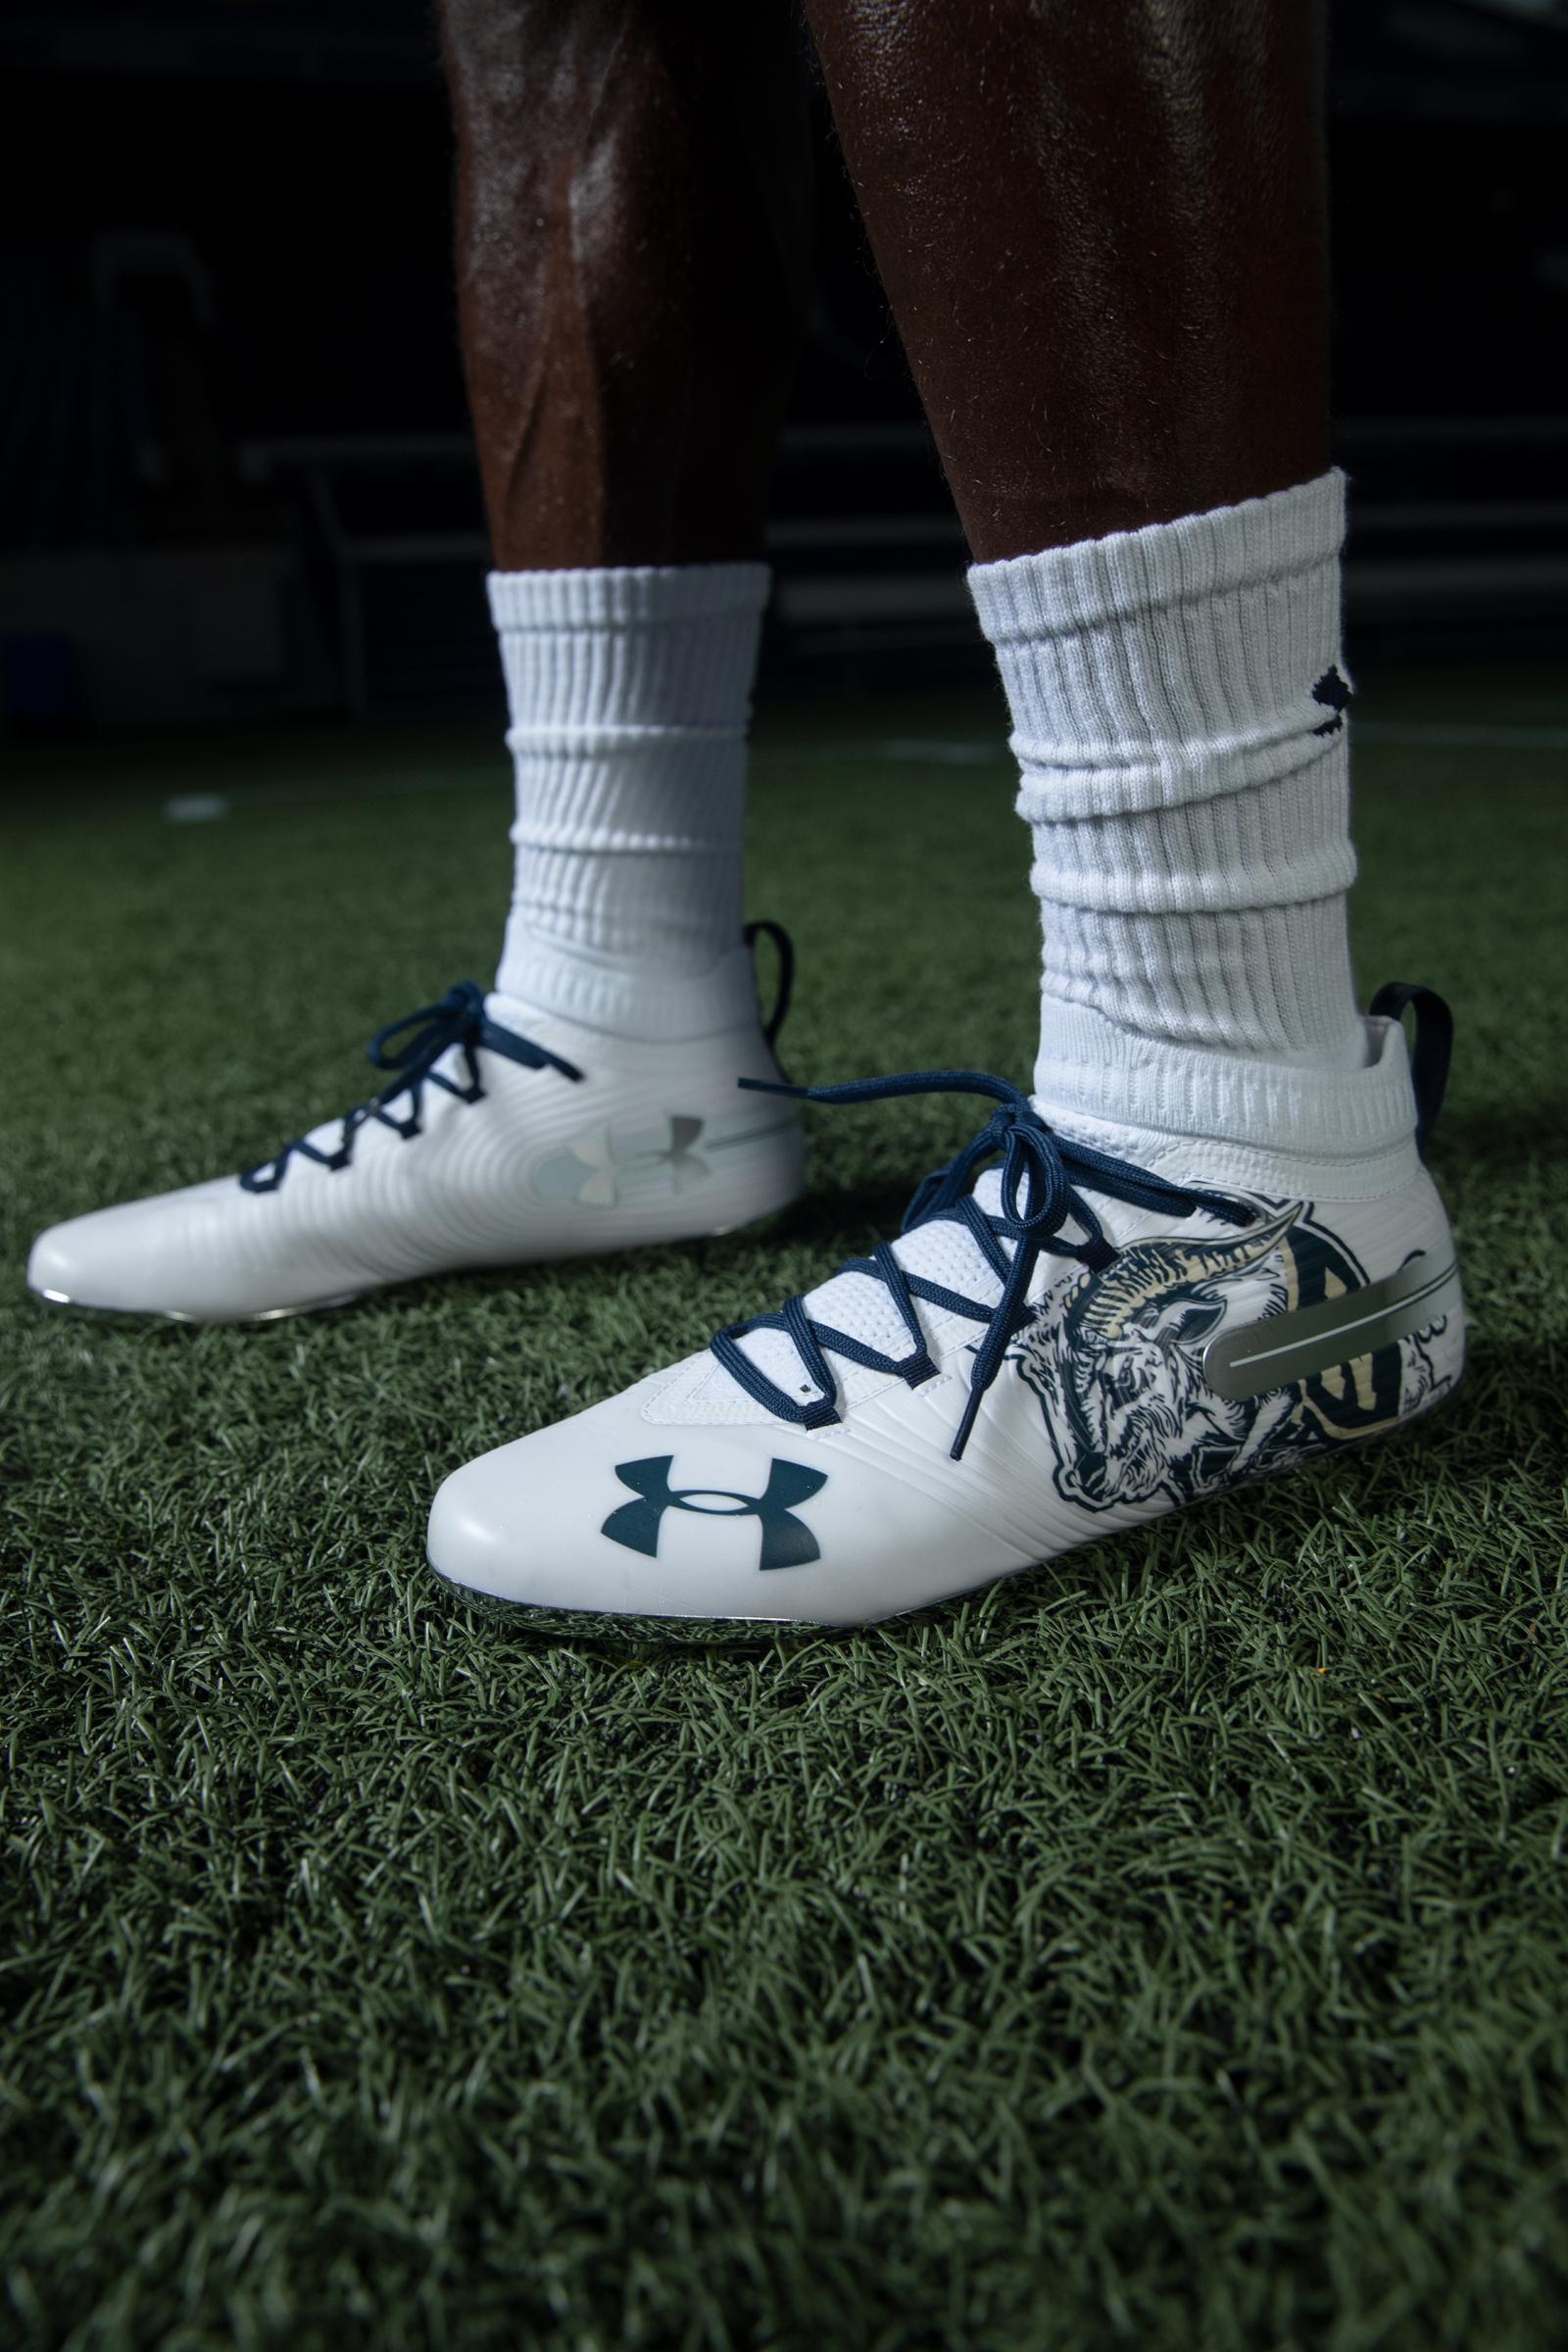 Bill the Goat also decorates the midshipmen's gloves and cleats.